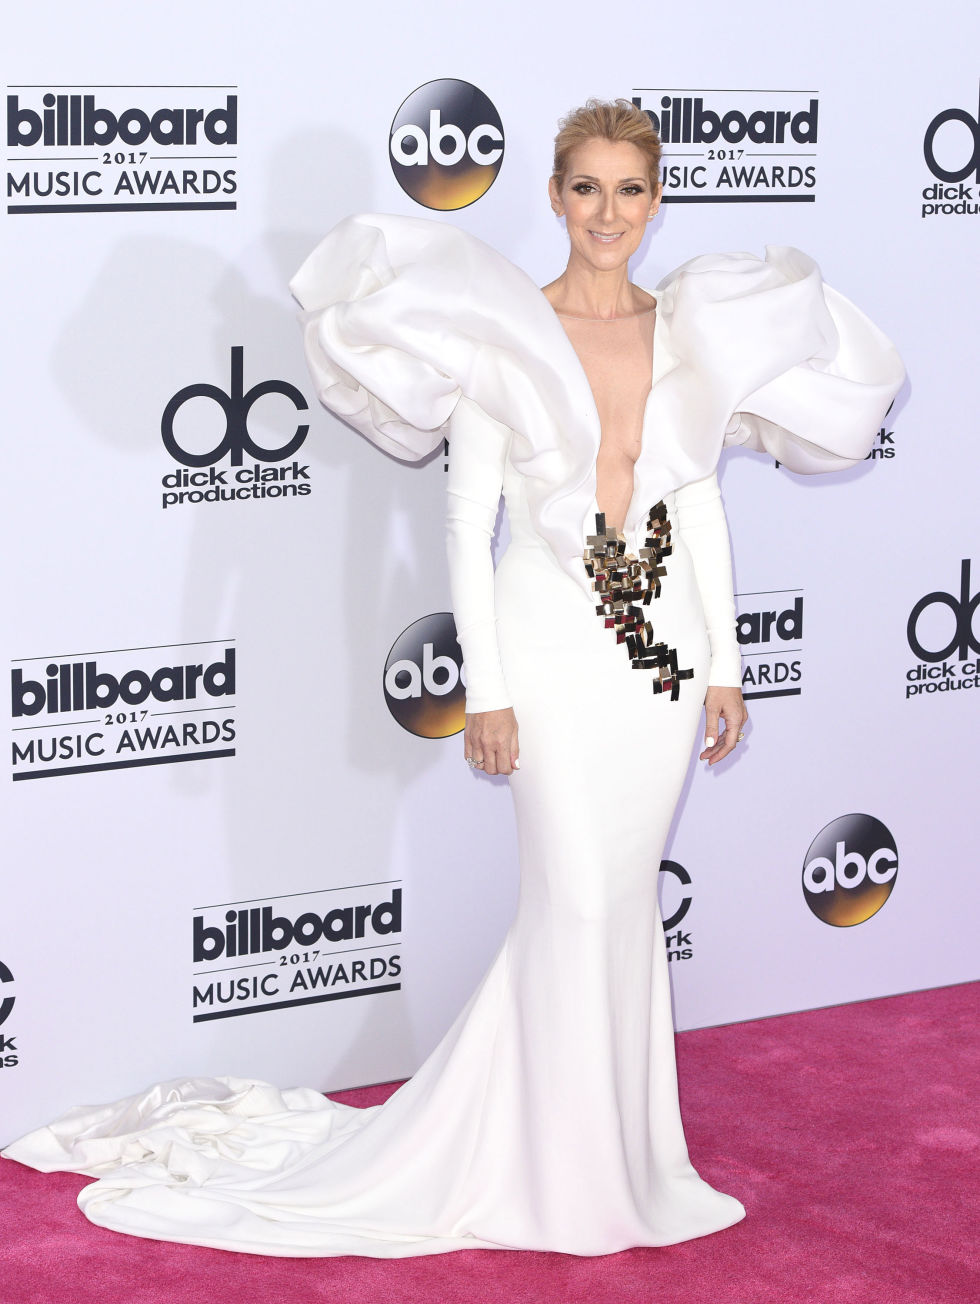 celine-dion-billboard-awards-2017.jpg